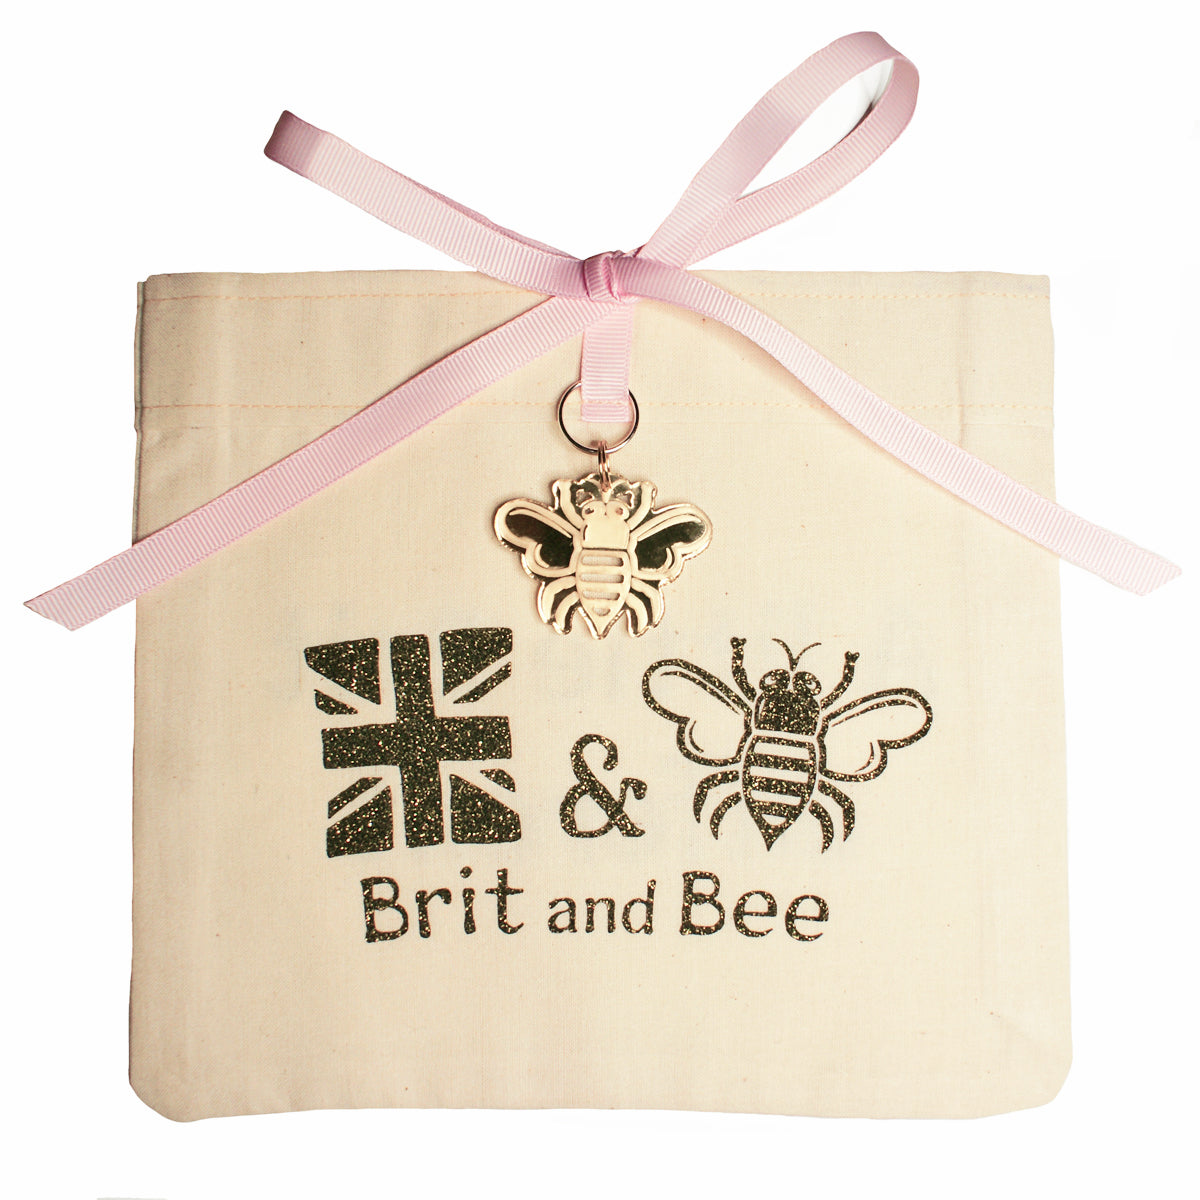 Brit and Bee Coozie - Gamma Phi Beta